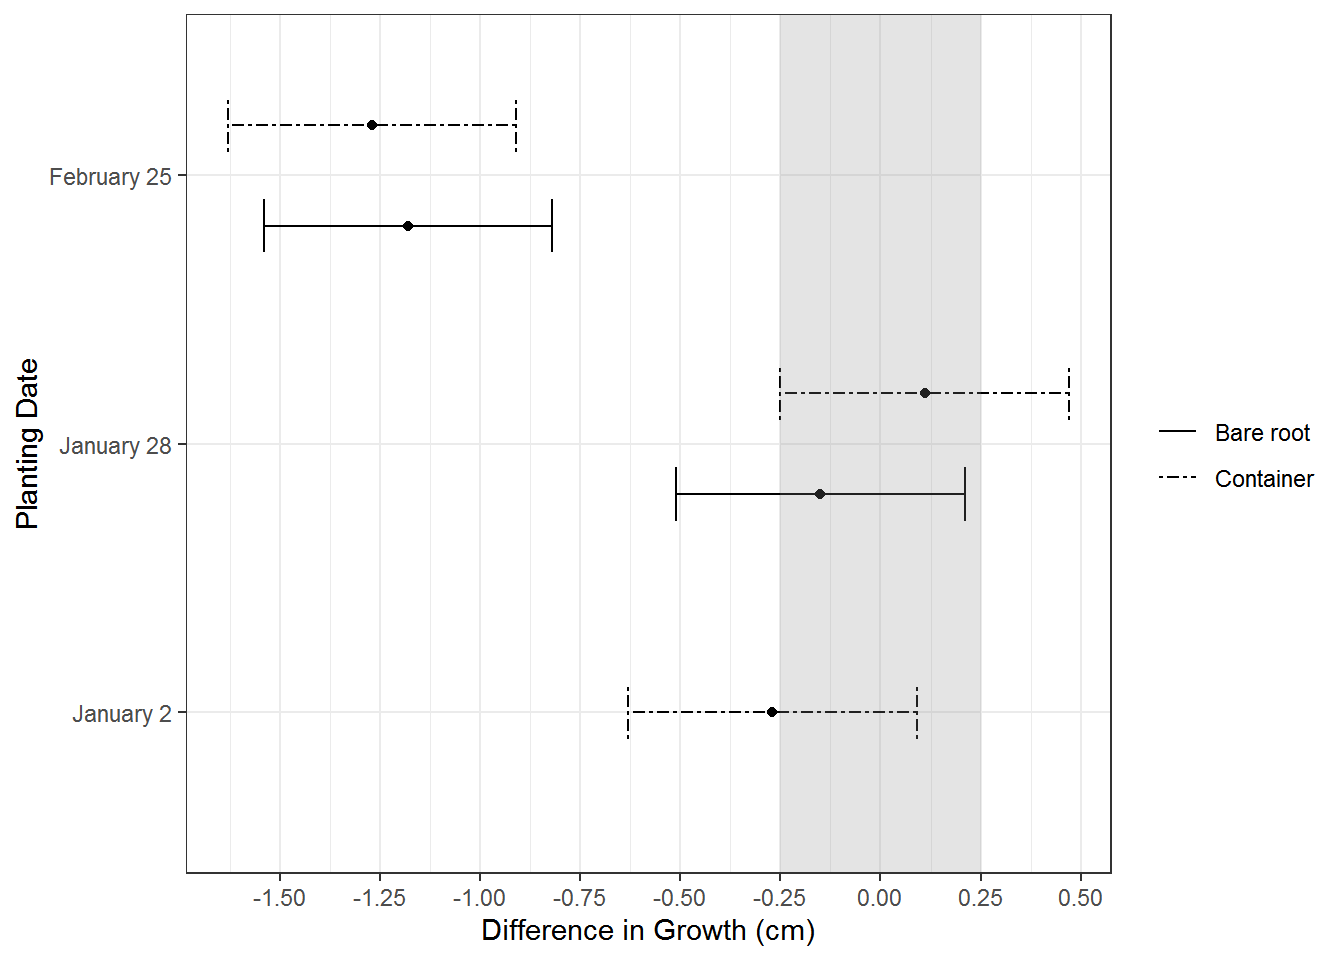 Reversing the order of a ggplot2 legend